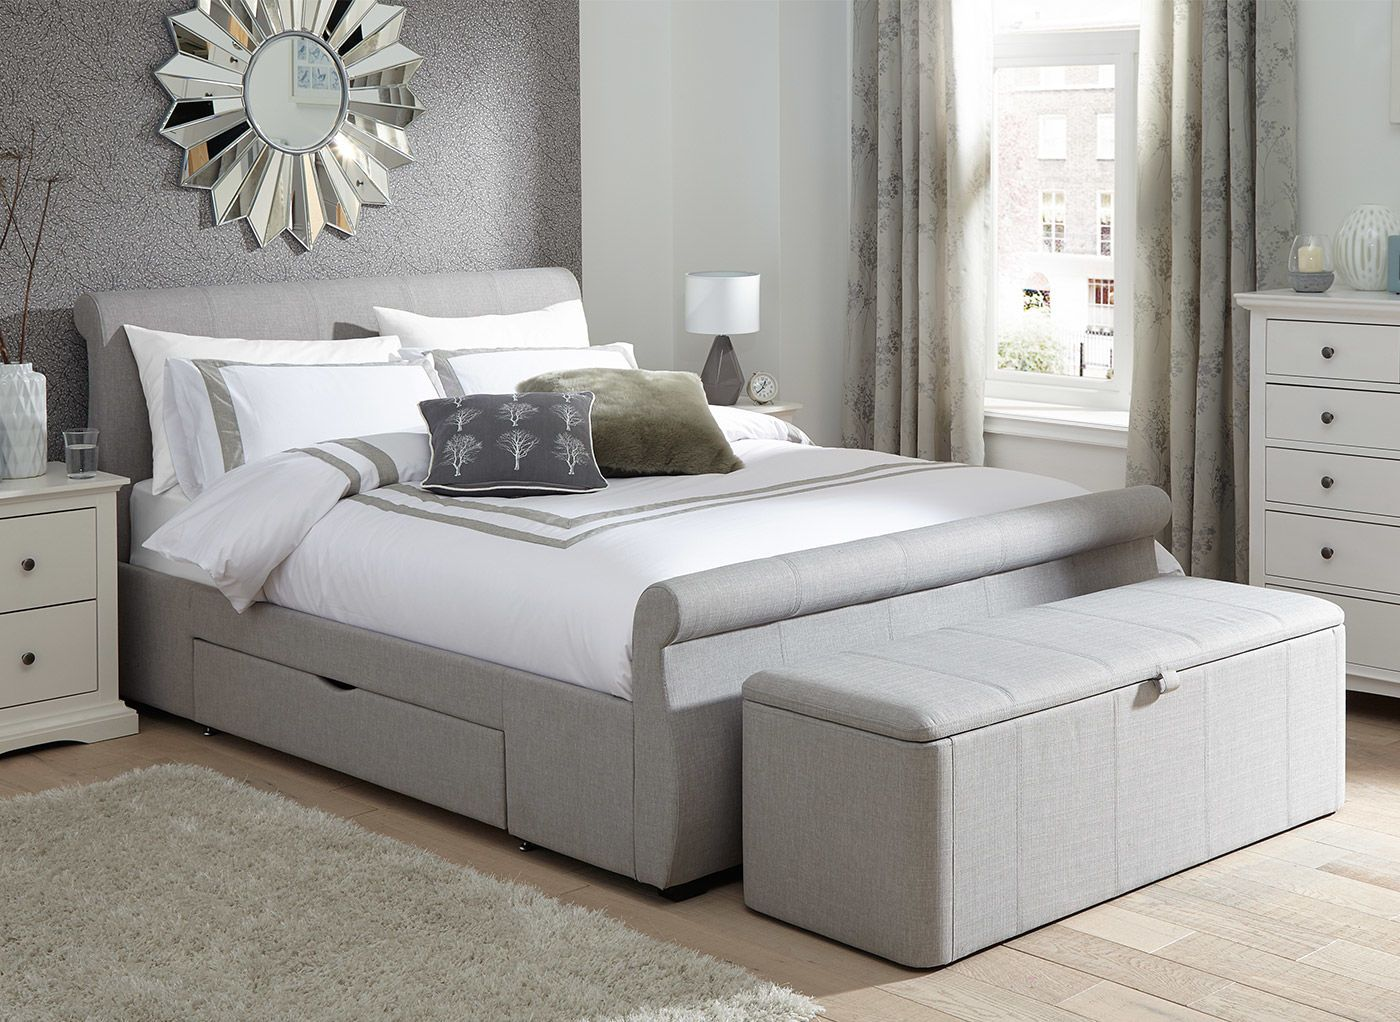 Lucia Upholstered Bed Frame Grey bed frame, Upholstered